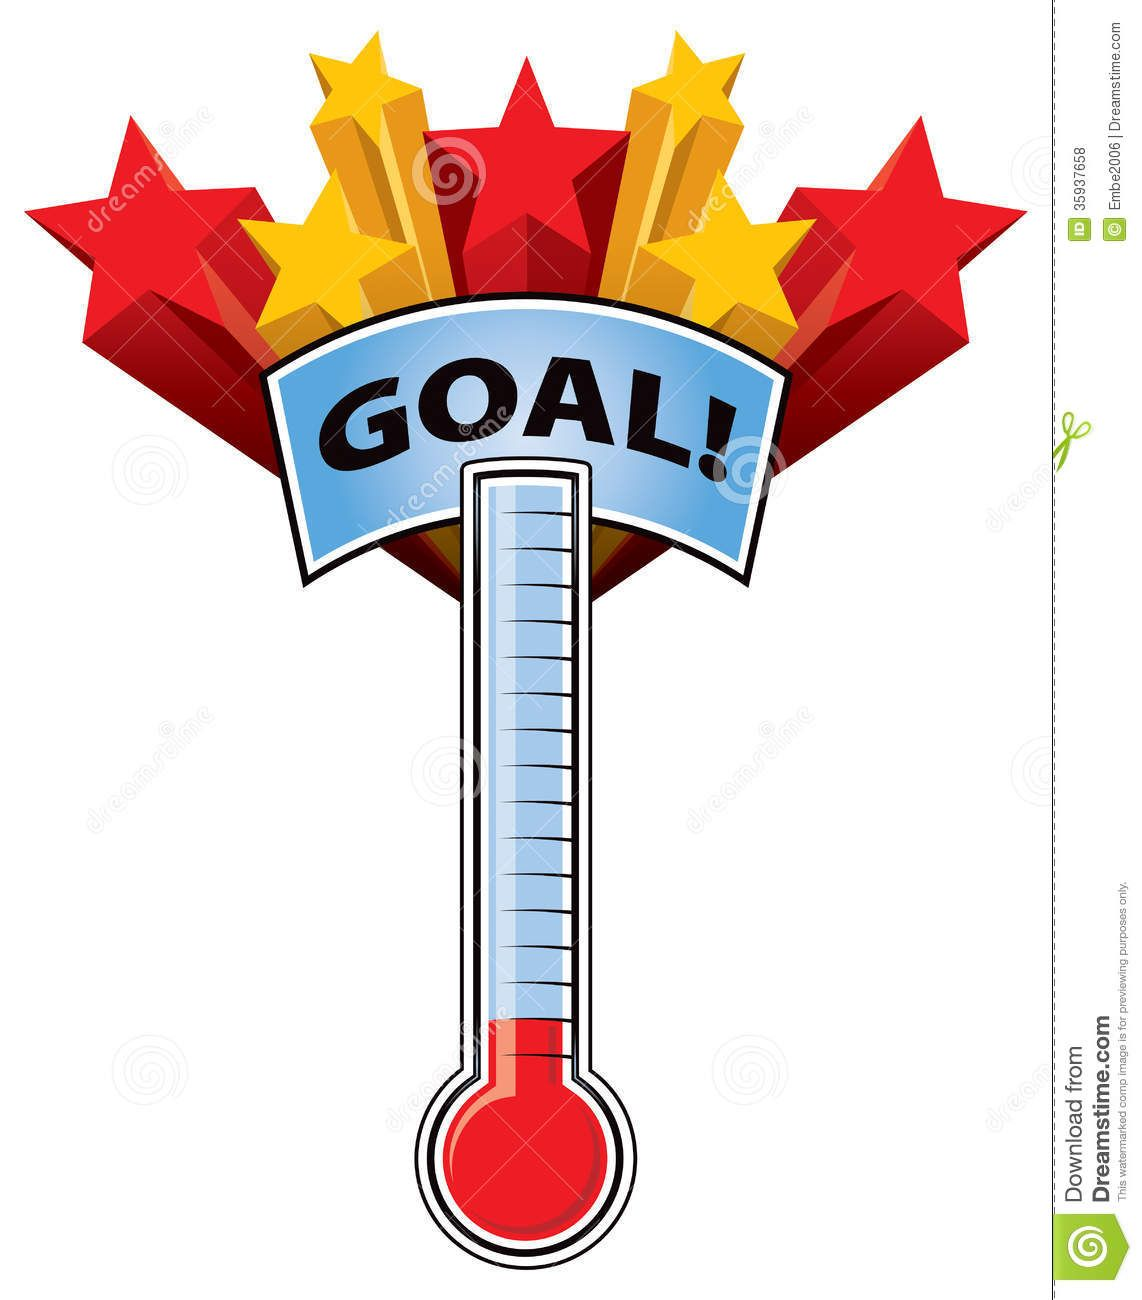 fundraising goal charts for cheerleading.